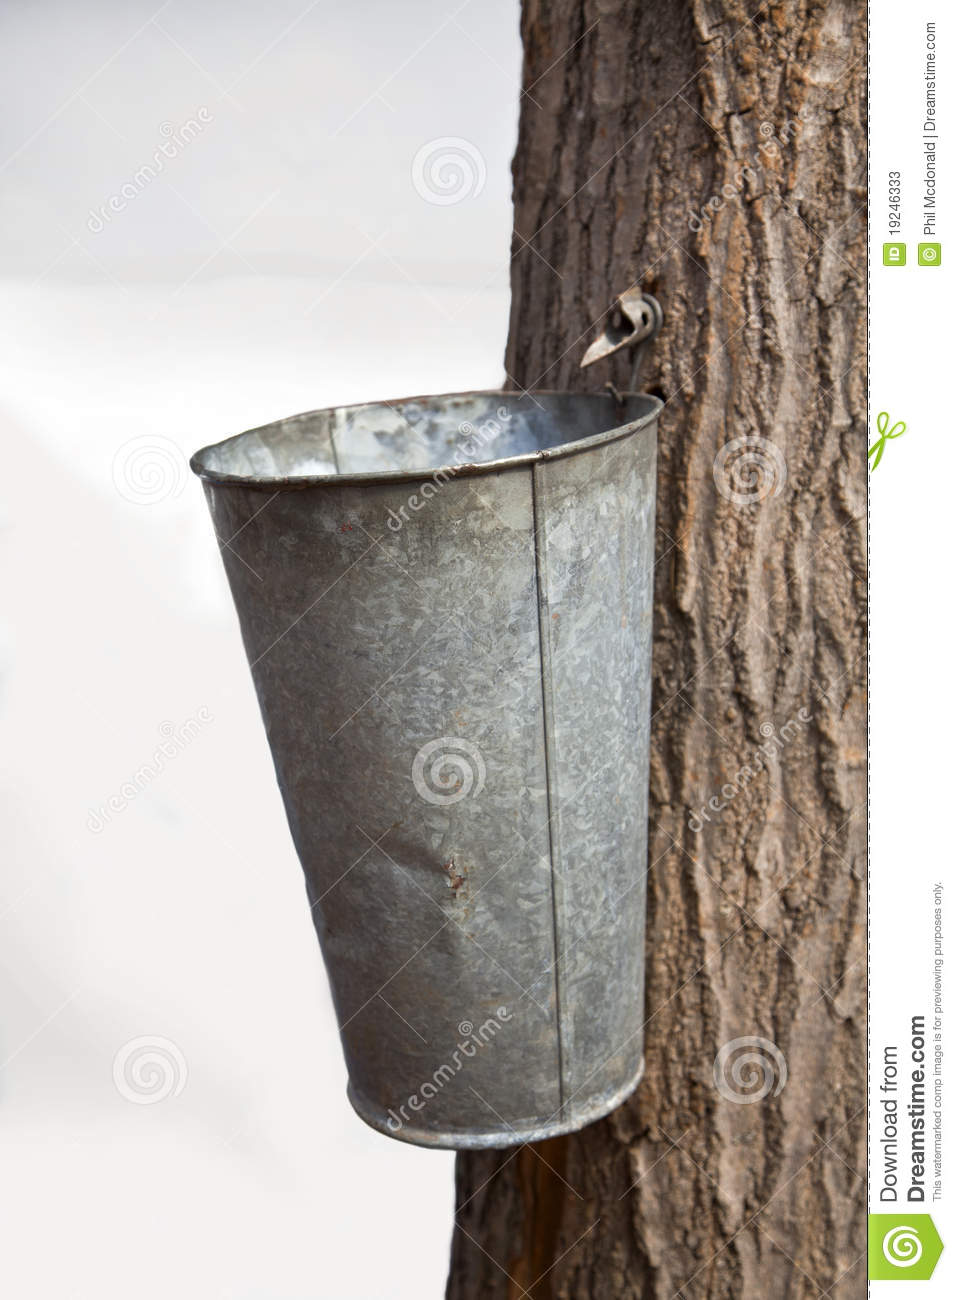 Spigot Tapped Into A Maple Tree To Collect Sap For Maple Syrup